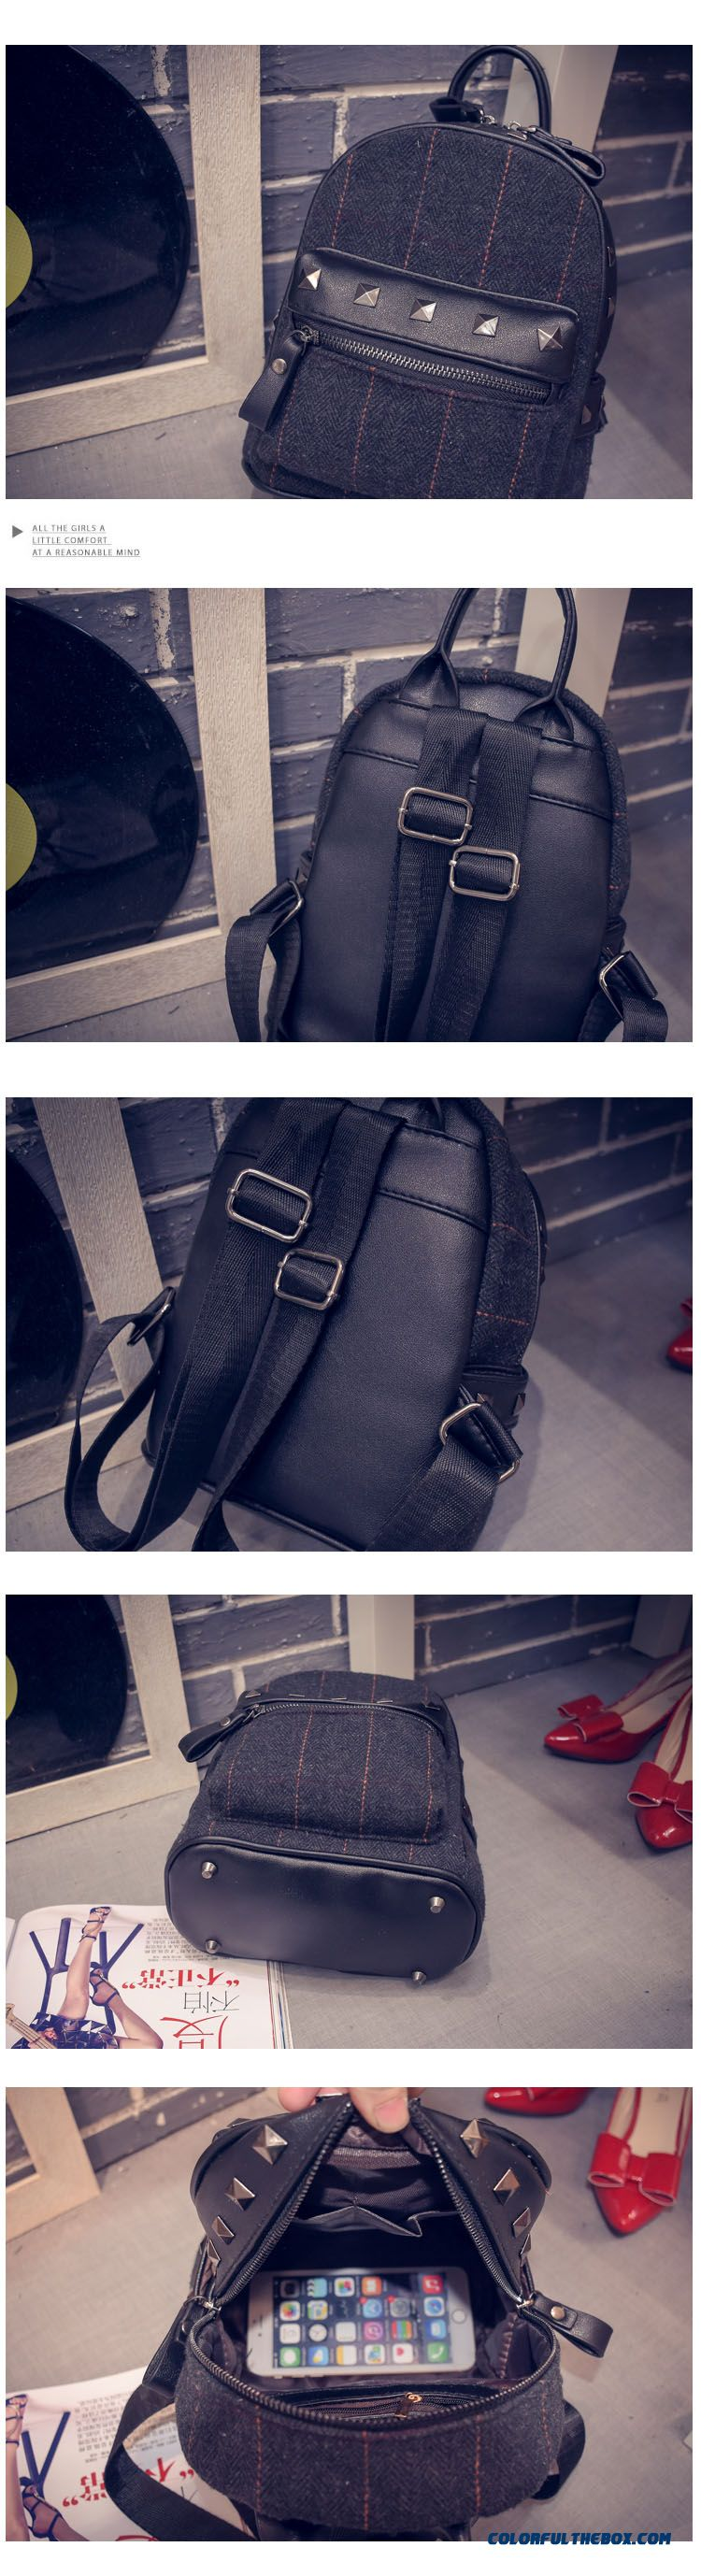 8eb48f0026d2 ... New Winter Plaid Women Korean College Style Schoolbags Simple Woolen  Mini Backpack - detail images ...